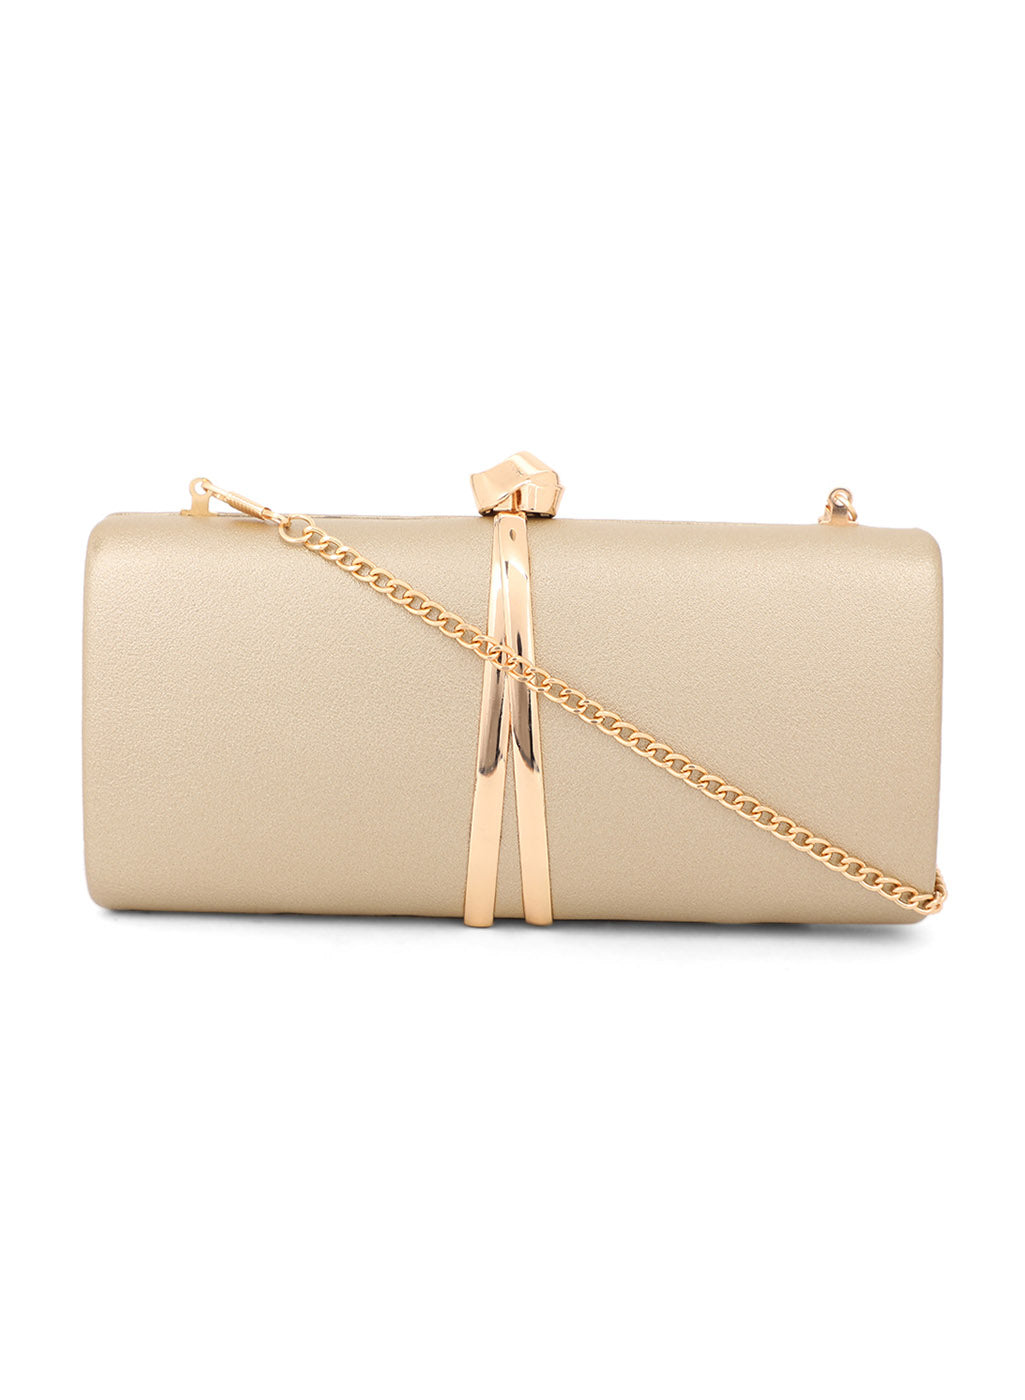 Rectangular Golden Color Clutch